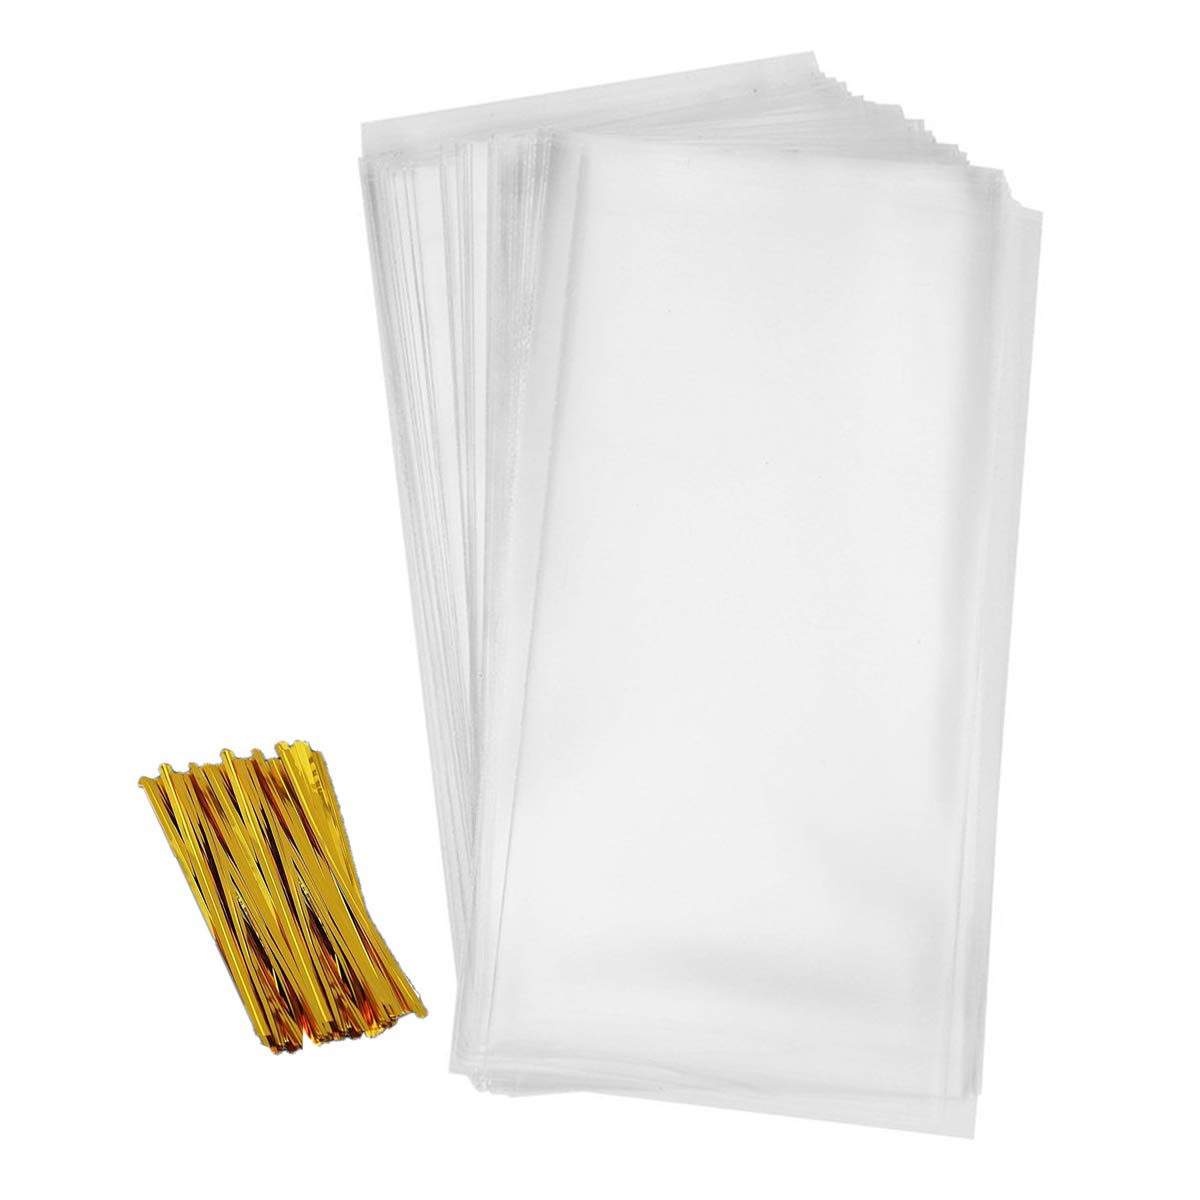 Cellophane Bag 200 PCS Clear Treat Bags Pretzel Bags for Party Favor Candies Goodies Bags with 200 PCS Metallic Twist Ties (2.4